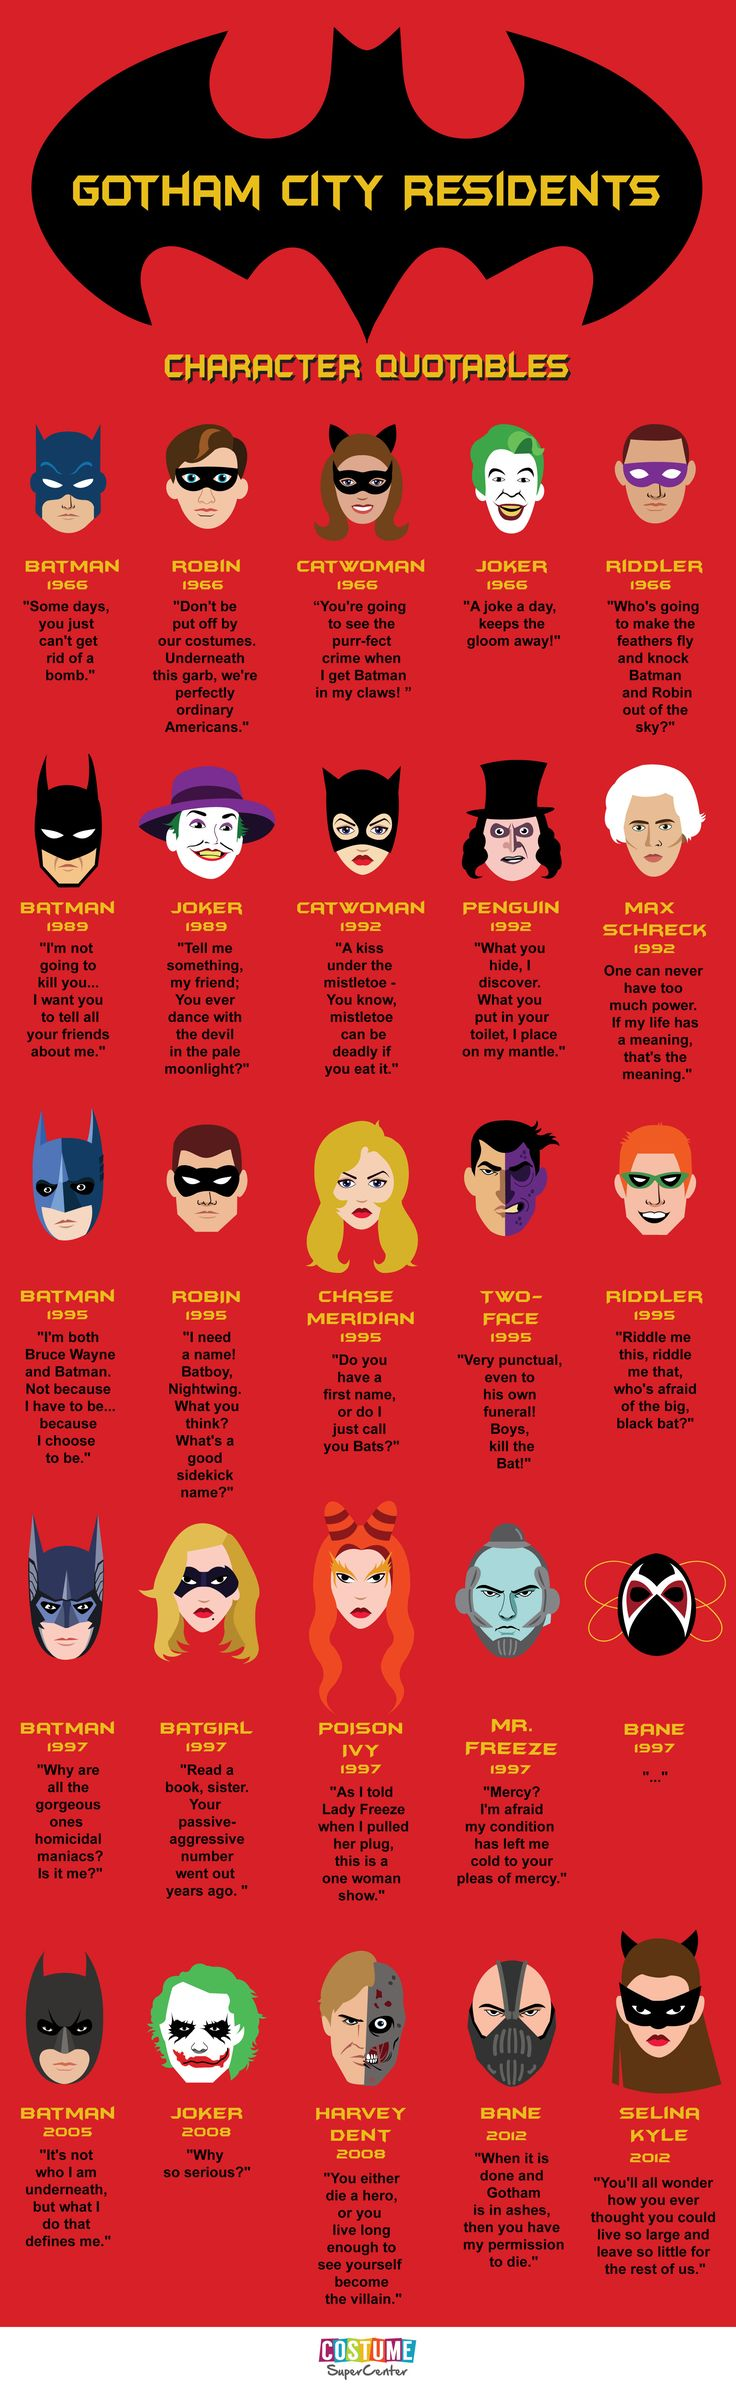 Check out what the residents of Gotham have had to say in the Batman universe over the years!